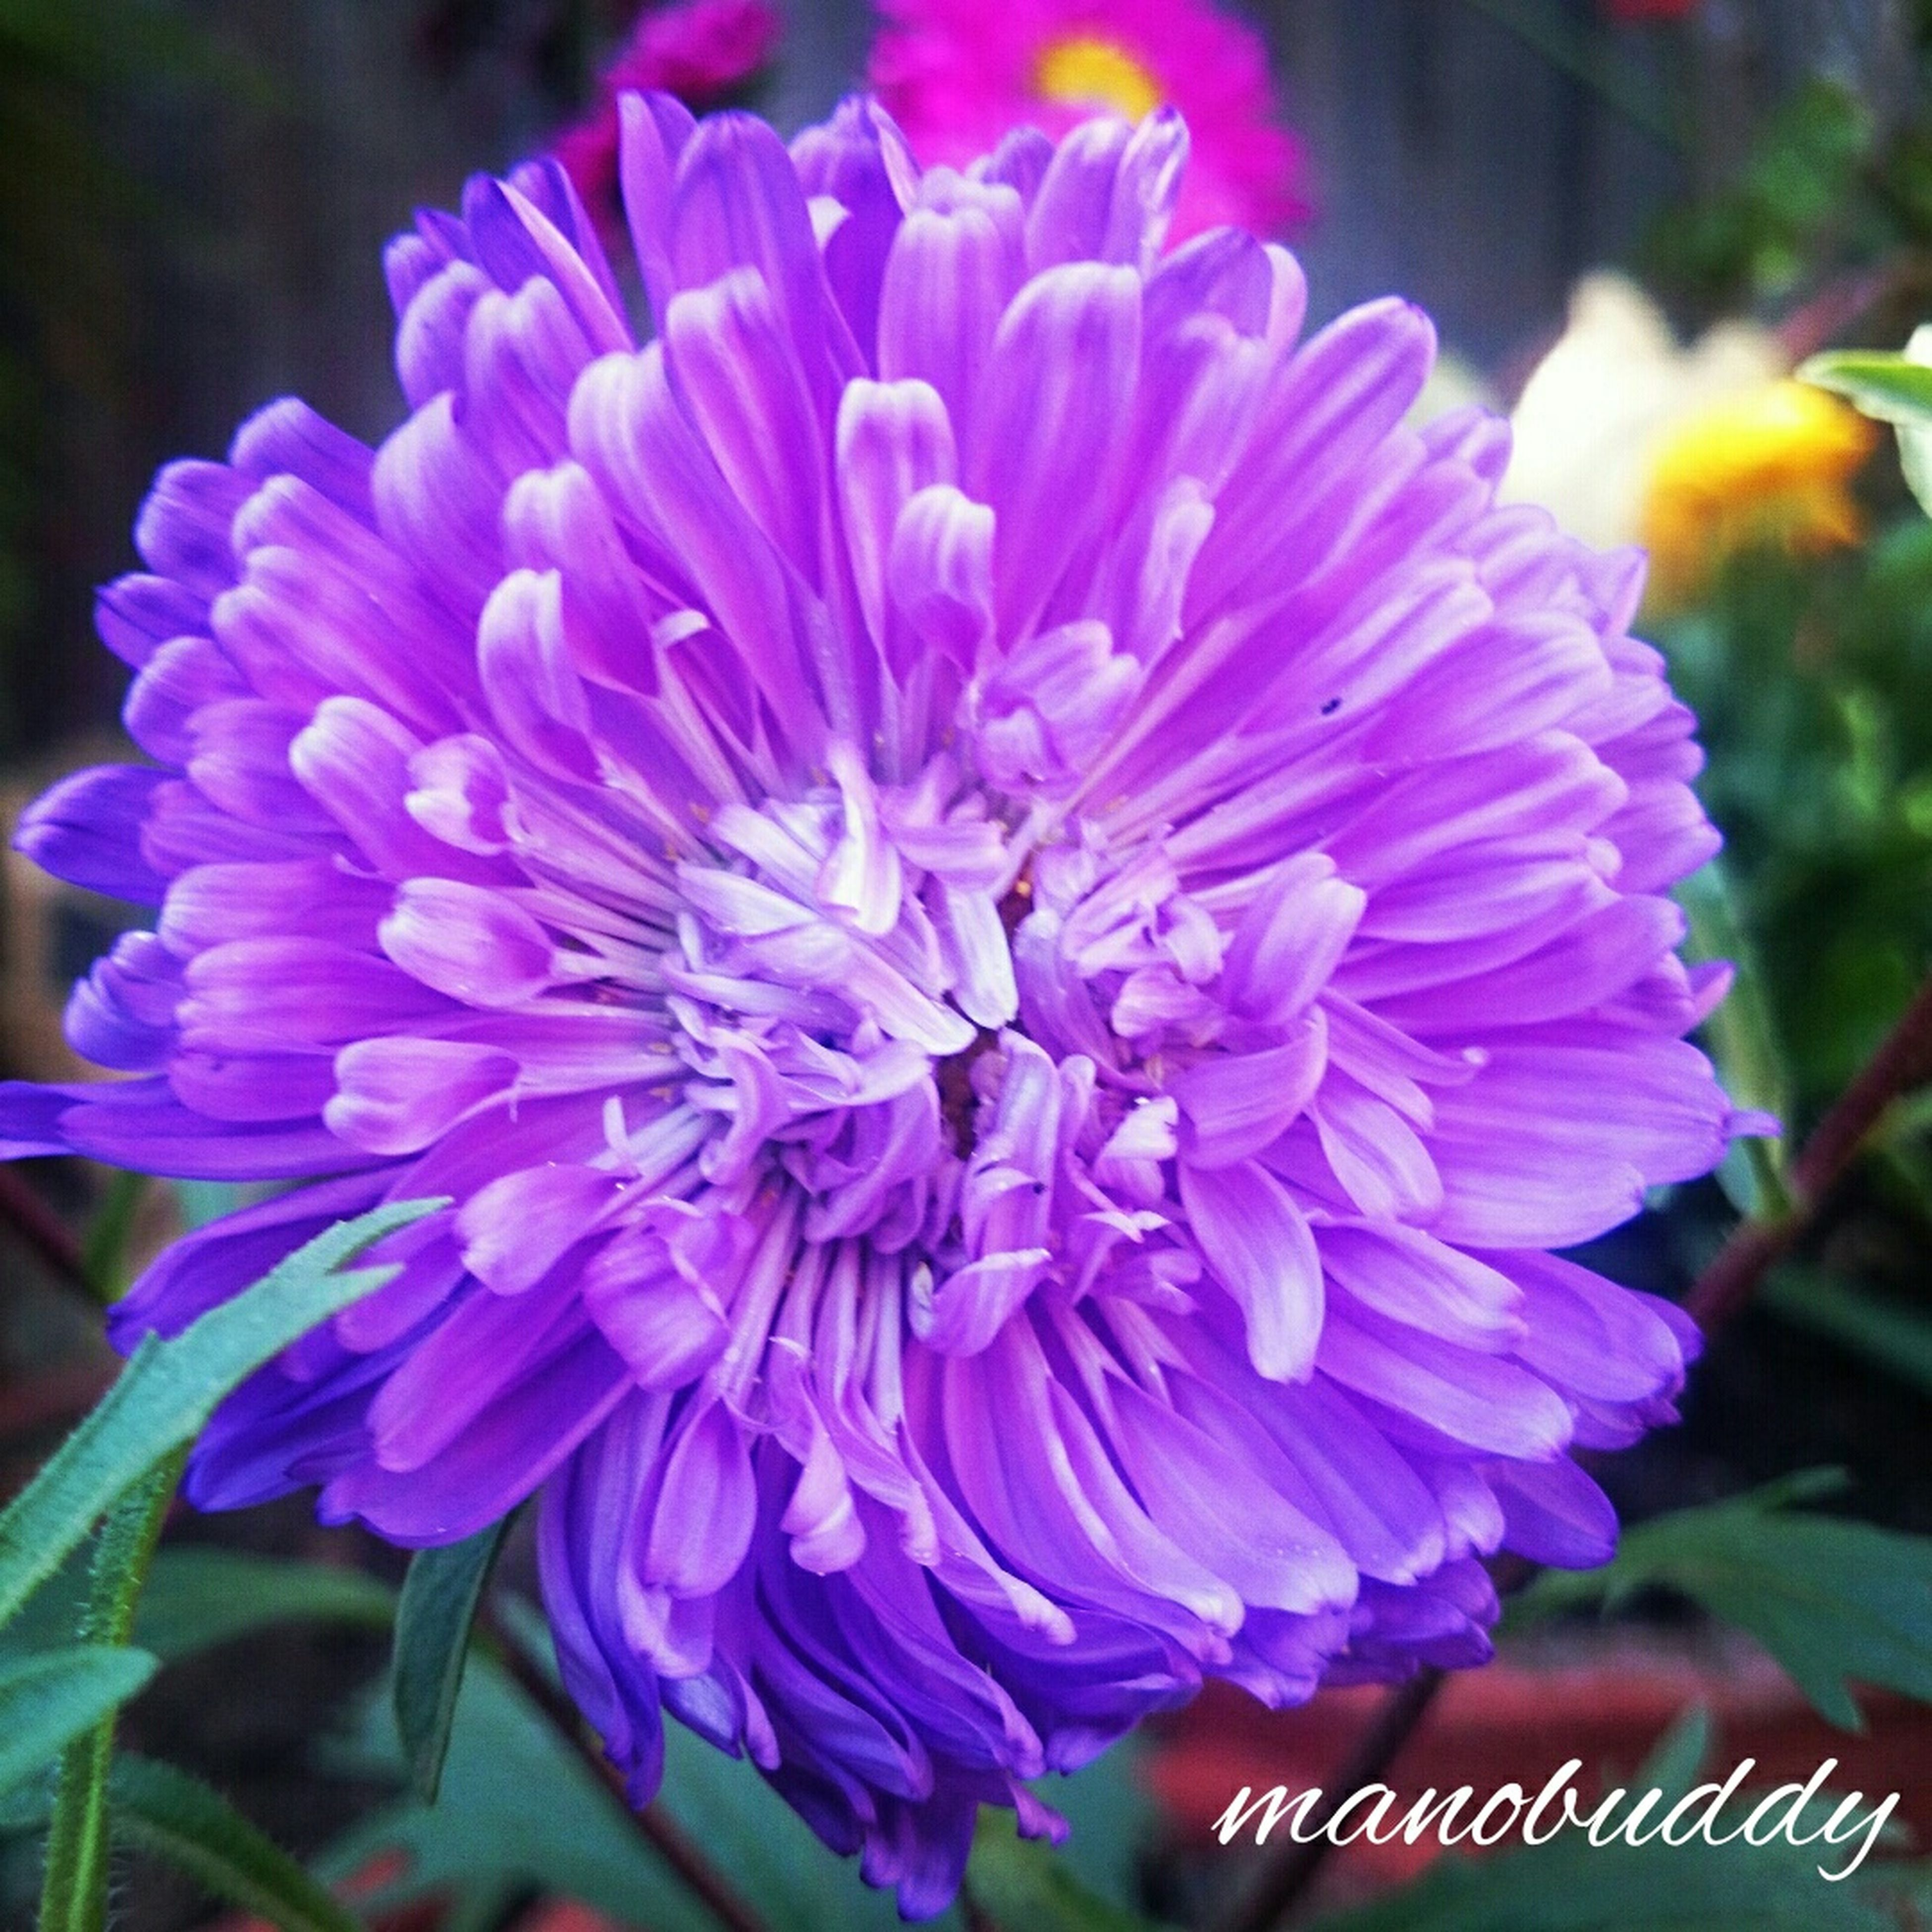 flower, petal, freshness, flower head, fragility, close-up, purple, beauty in nature, growth, focus on foreground, blooming, nature, plant, in bloom, single flower, no people, high angle view, day, outdoors, park - man made space